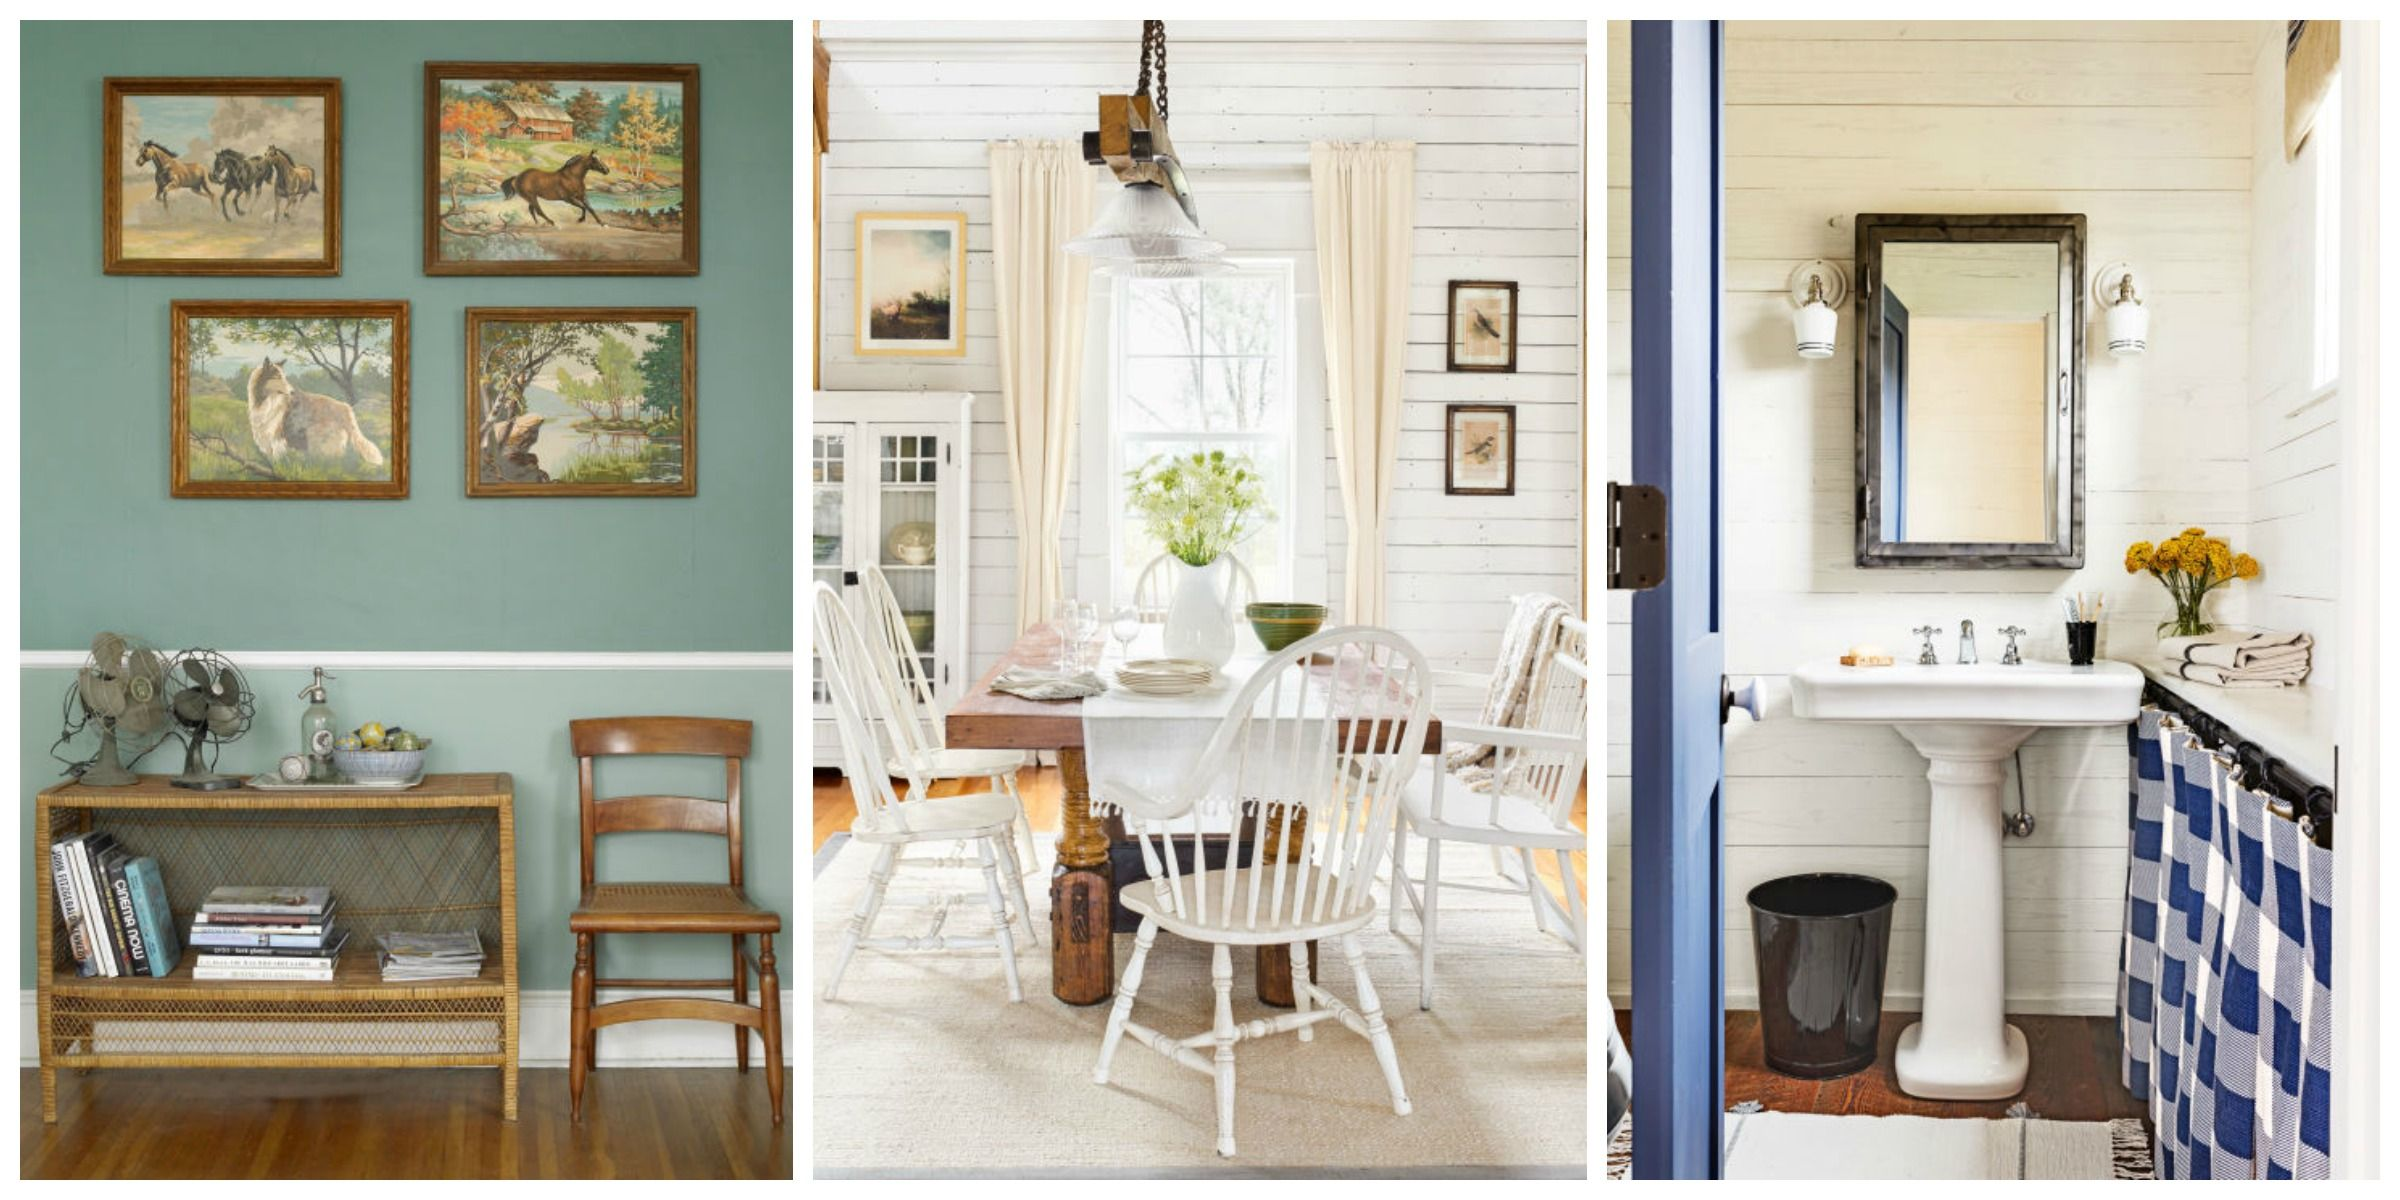 38 budget friendly home decorating ideas